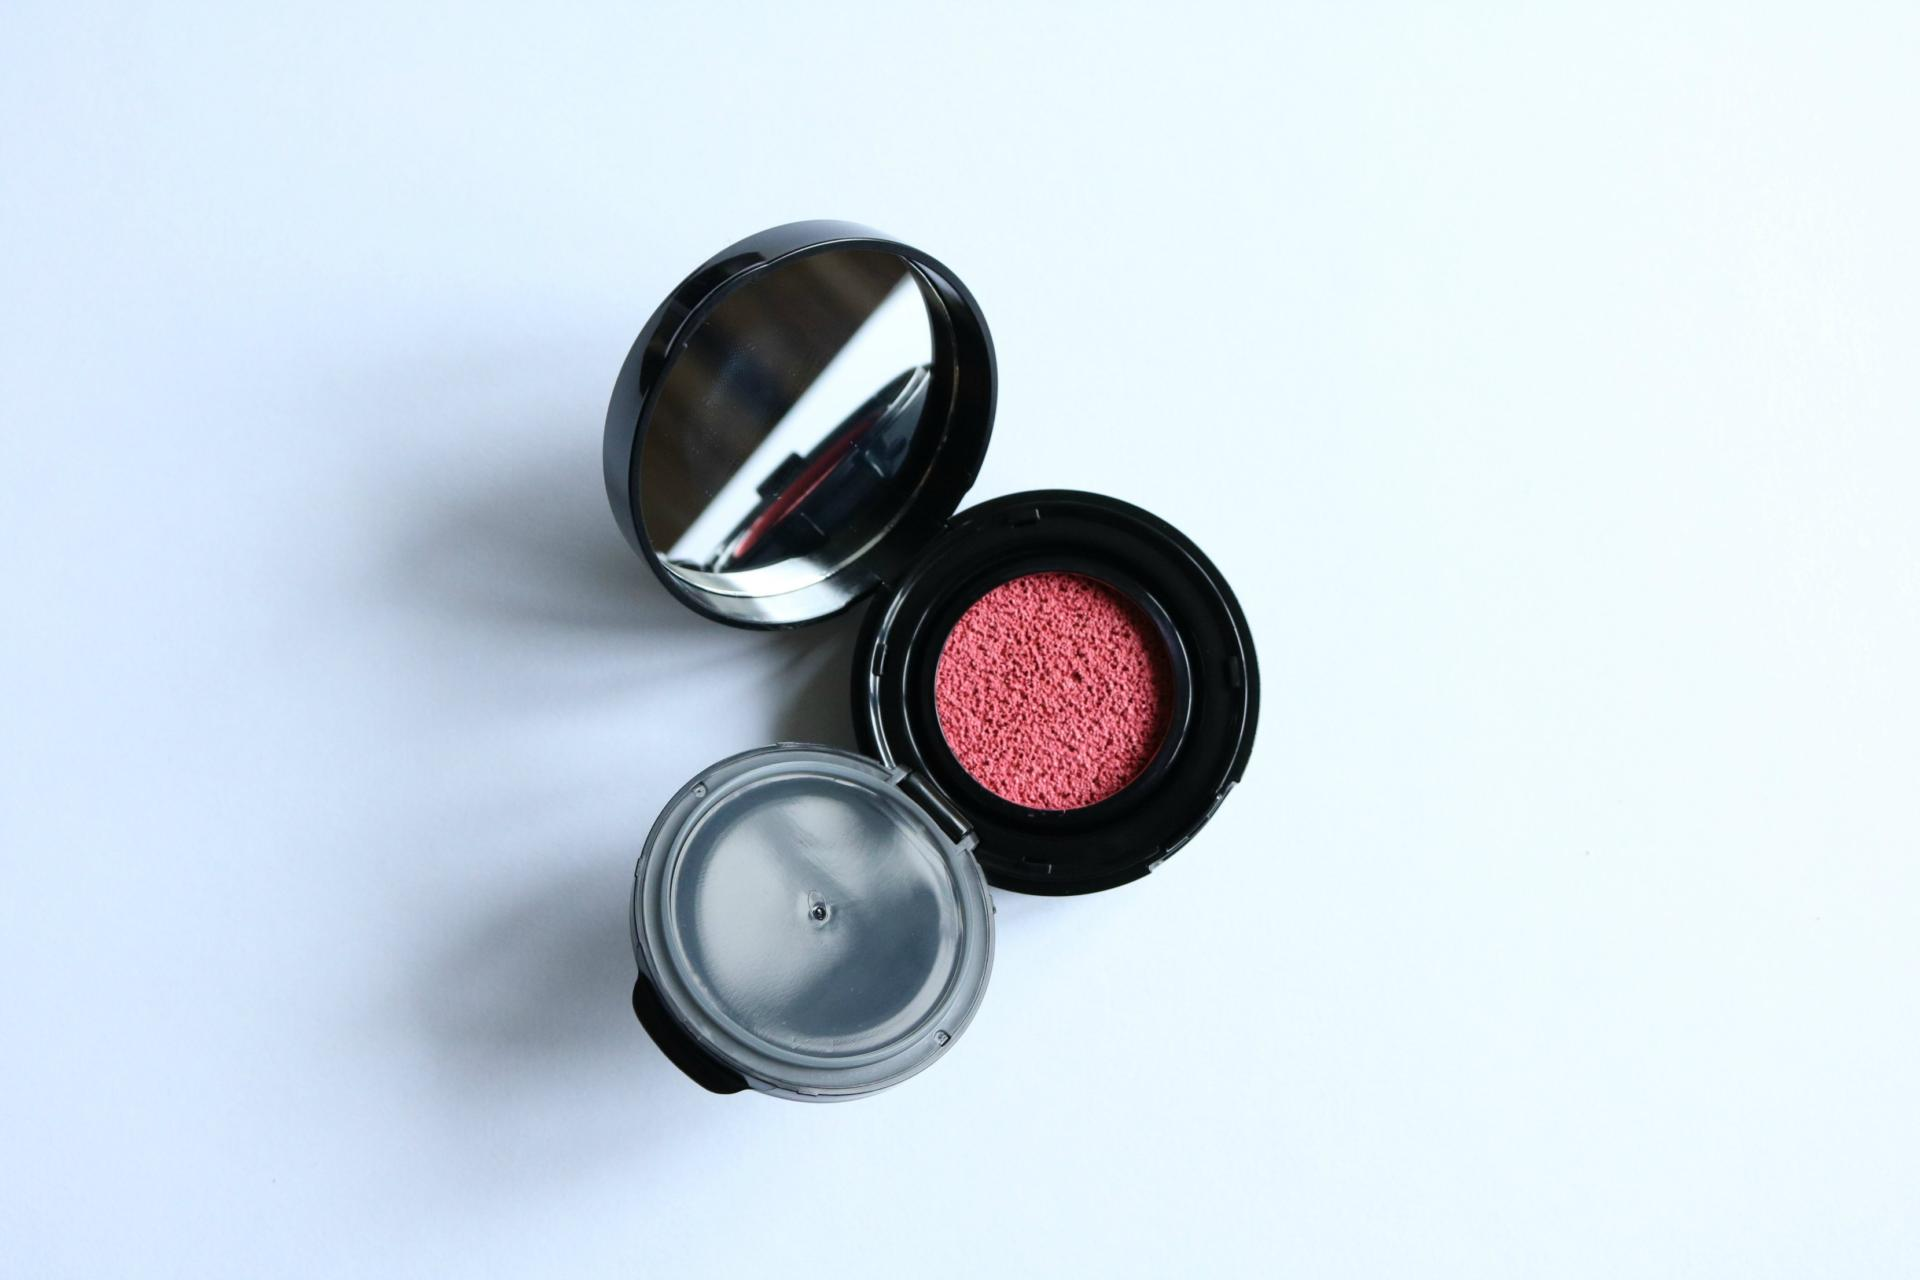 Lancôme Juicy Shakers and Cushion Blush Subtil | www.styledomination.com